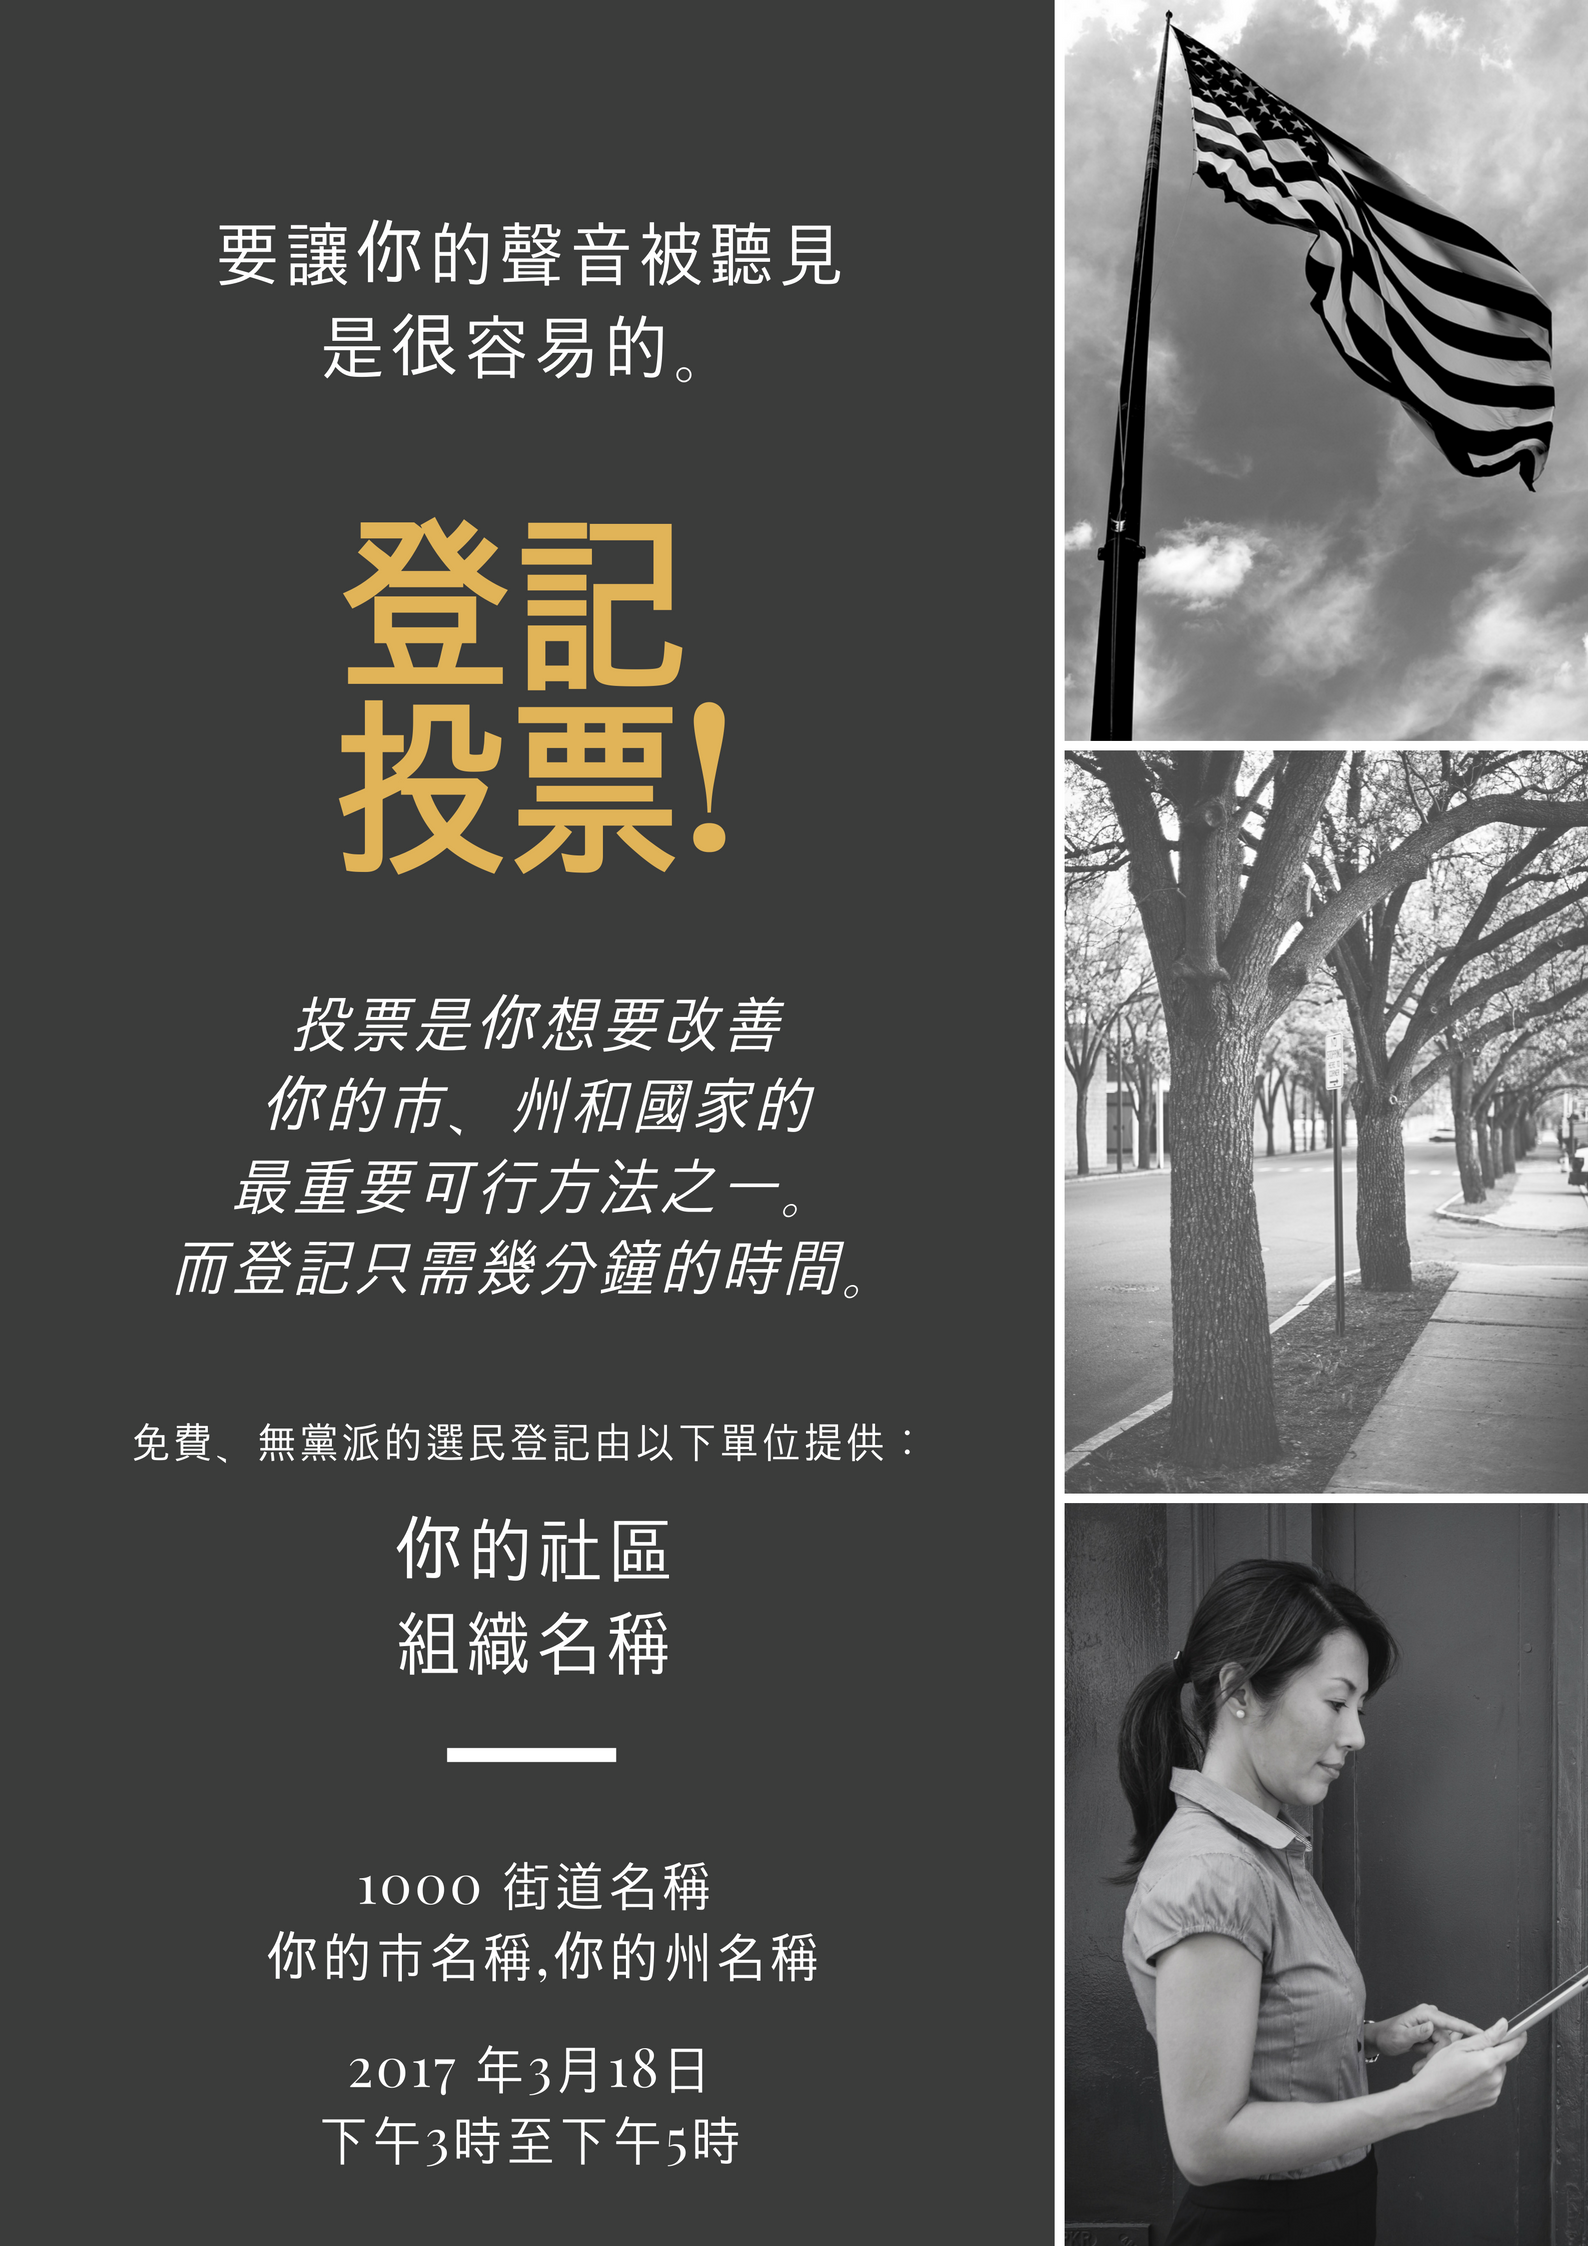 Black and white poster promotes a voter registration event with Chinese placeholder text